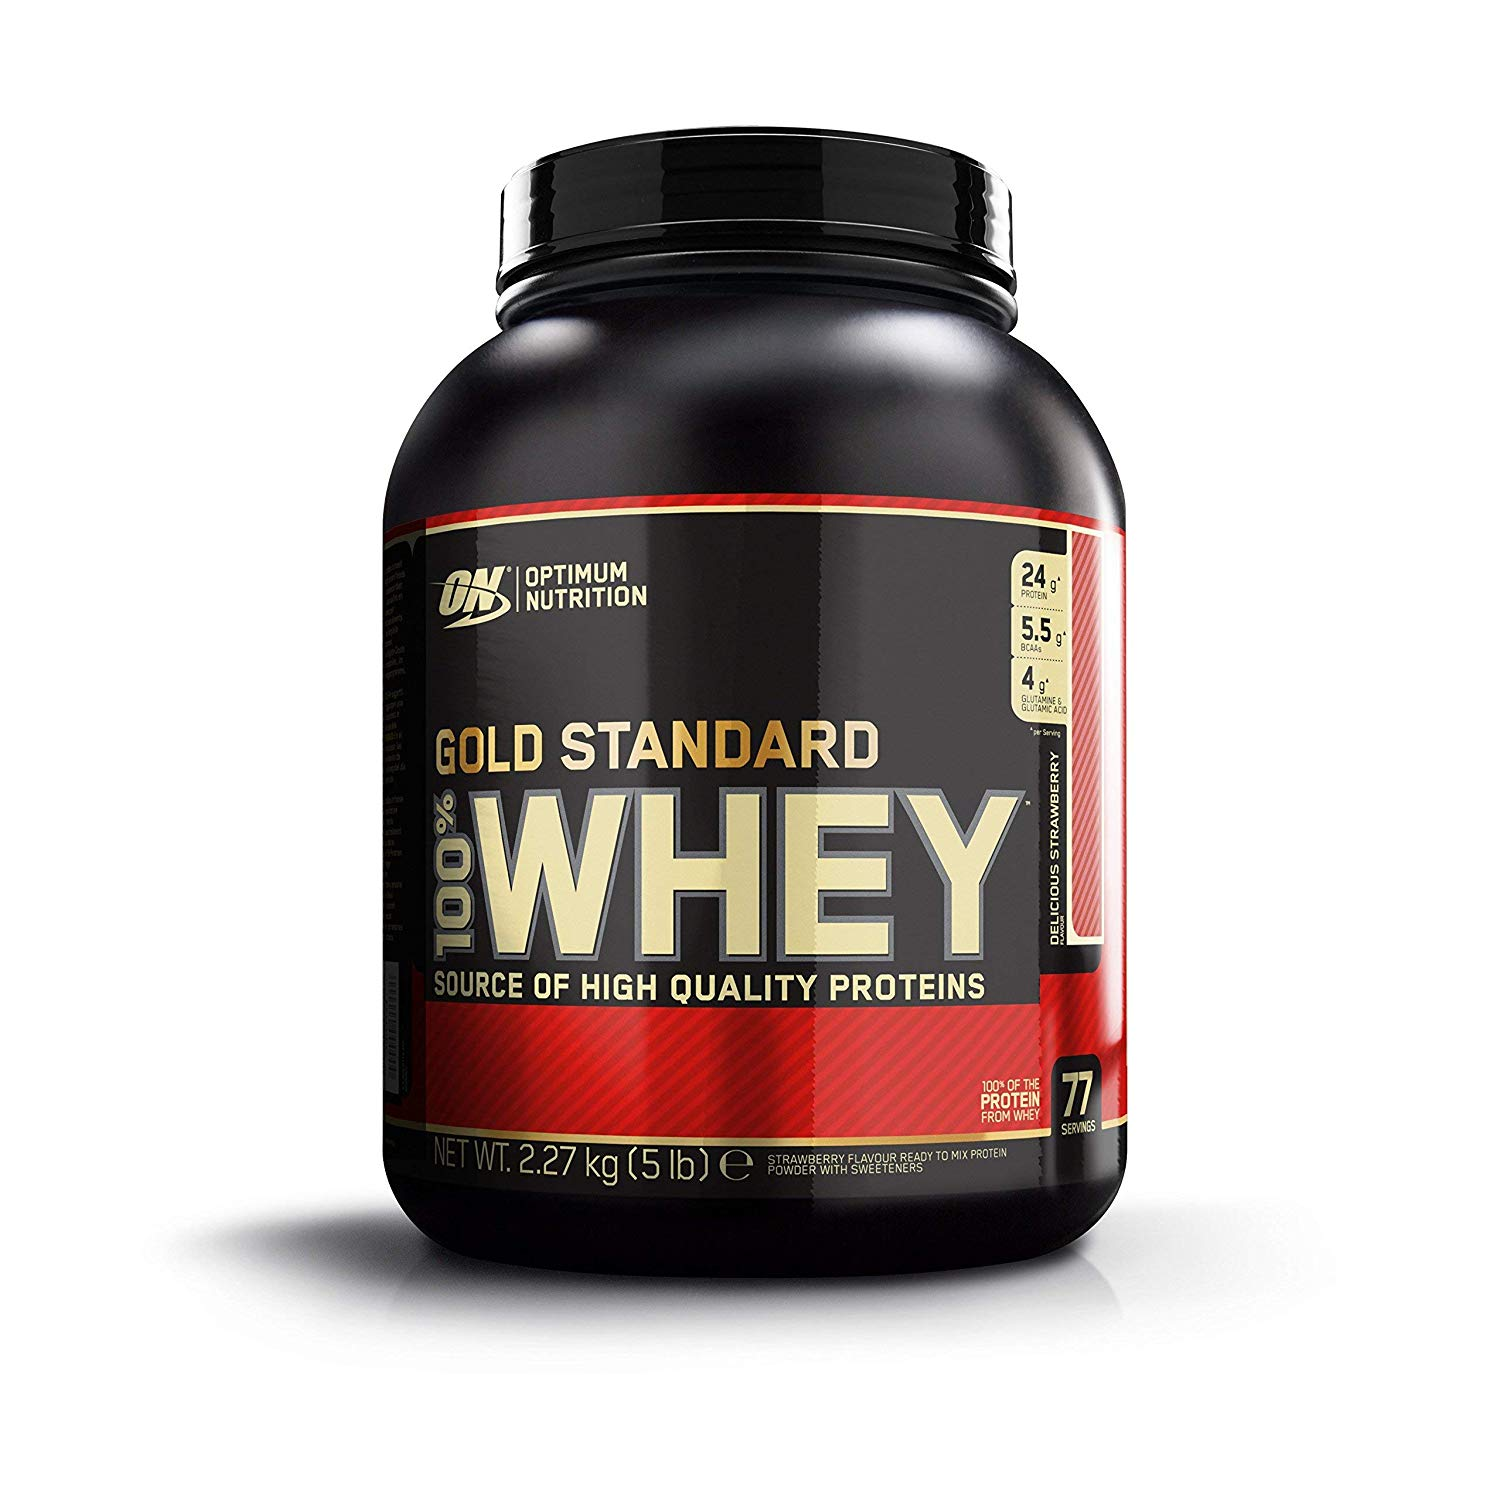 ON Gold Standard Whey